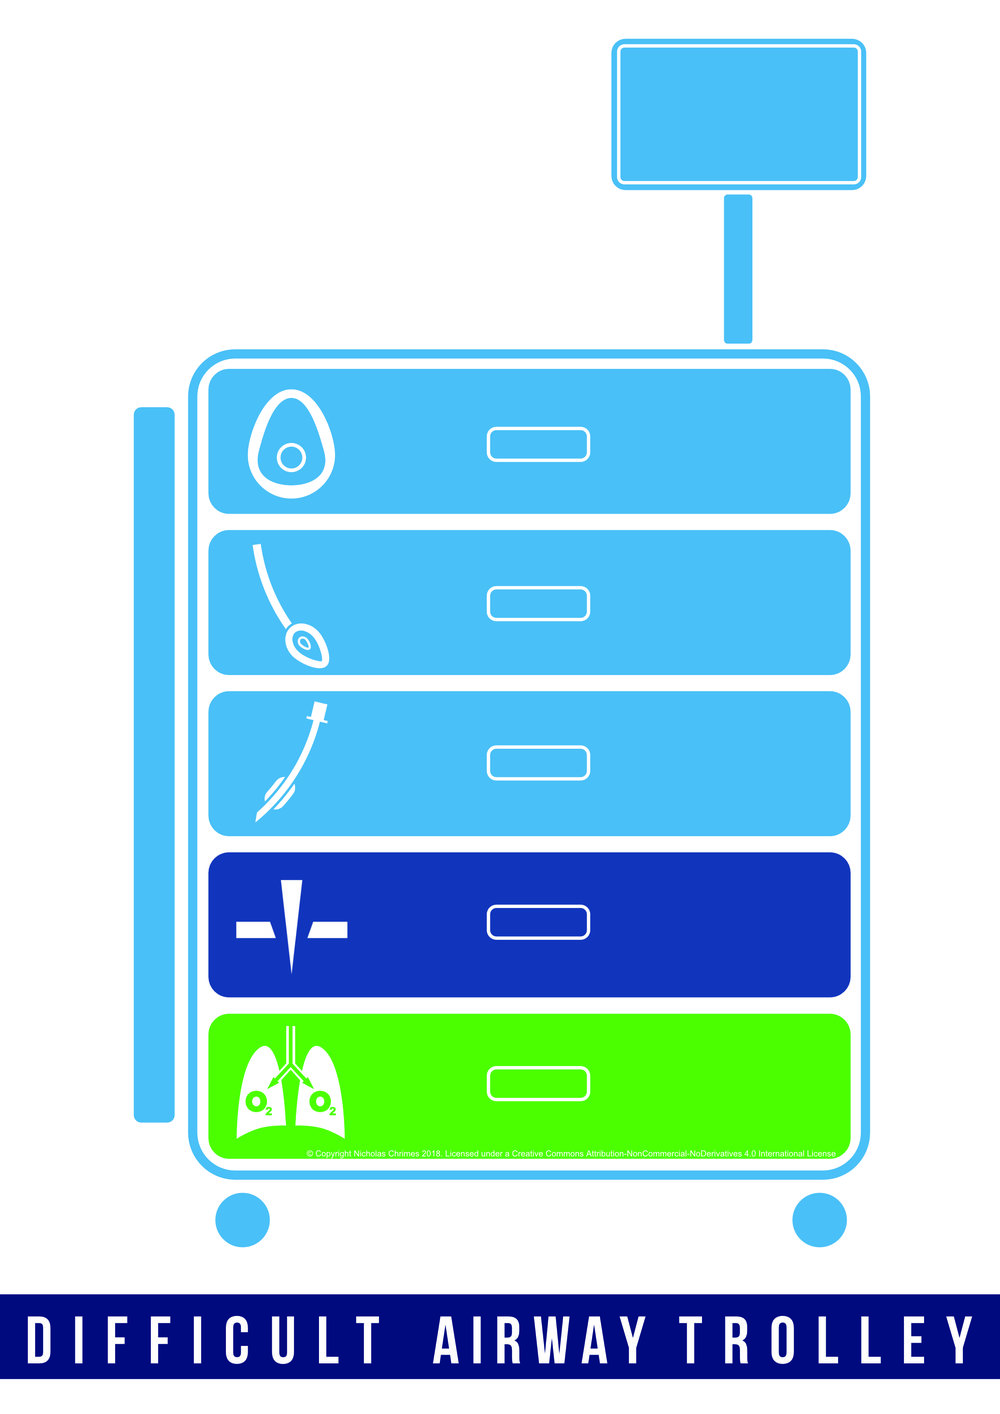 Difficult Airway Trolley Sign with Text